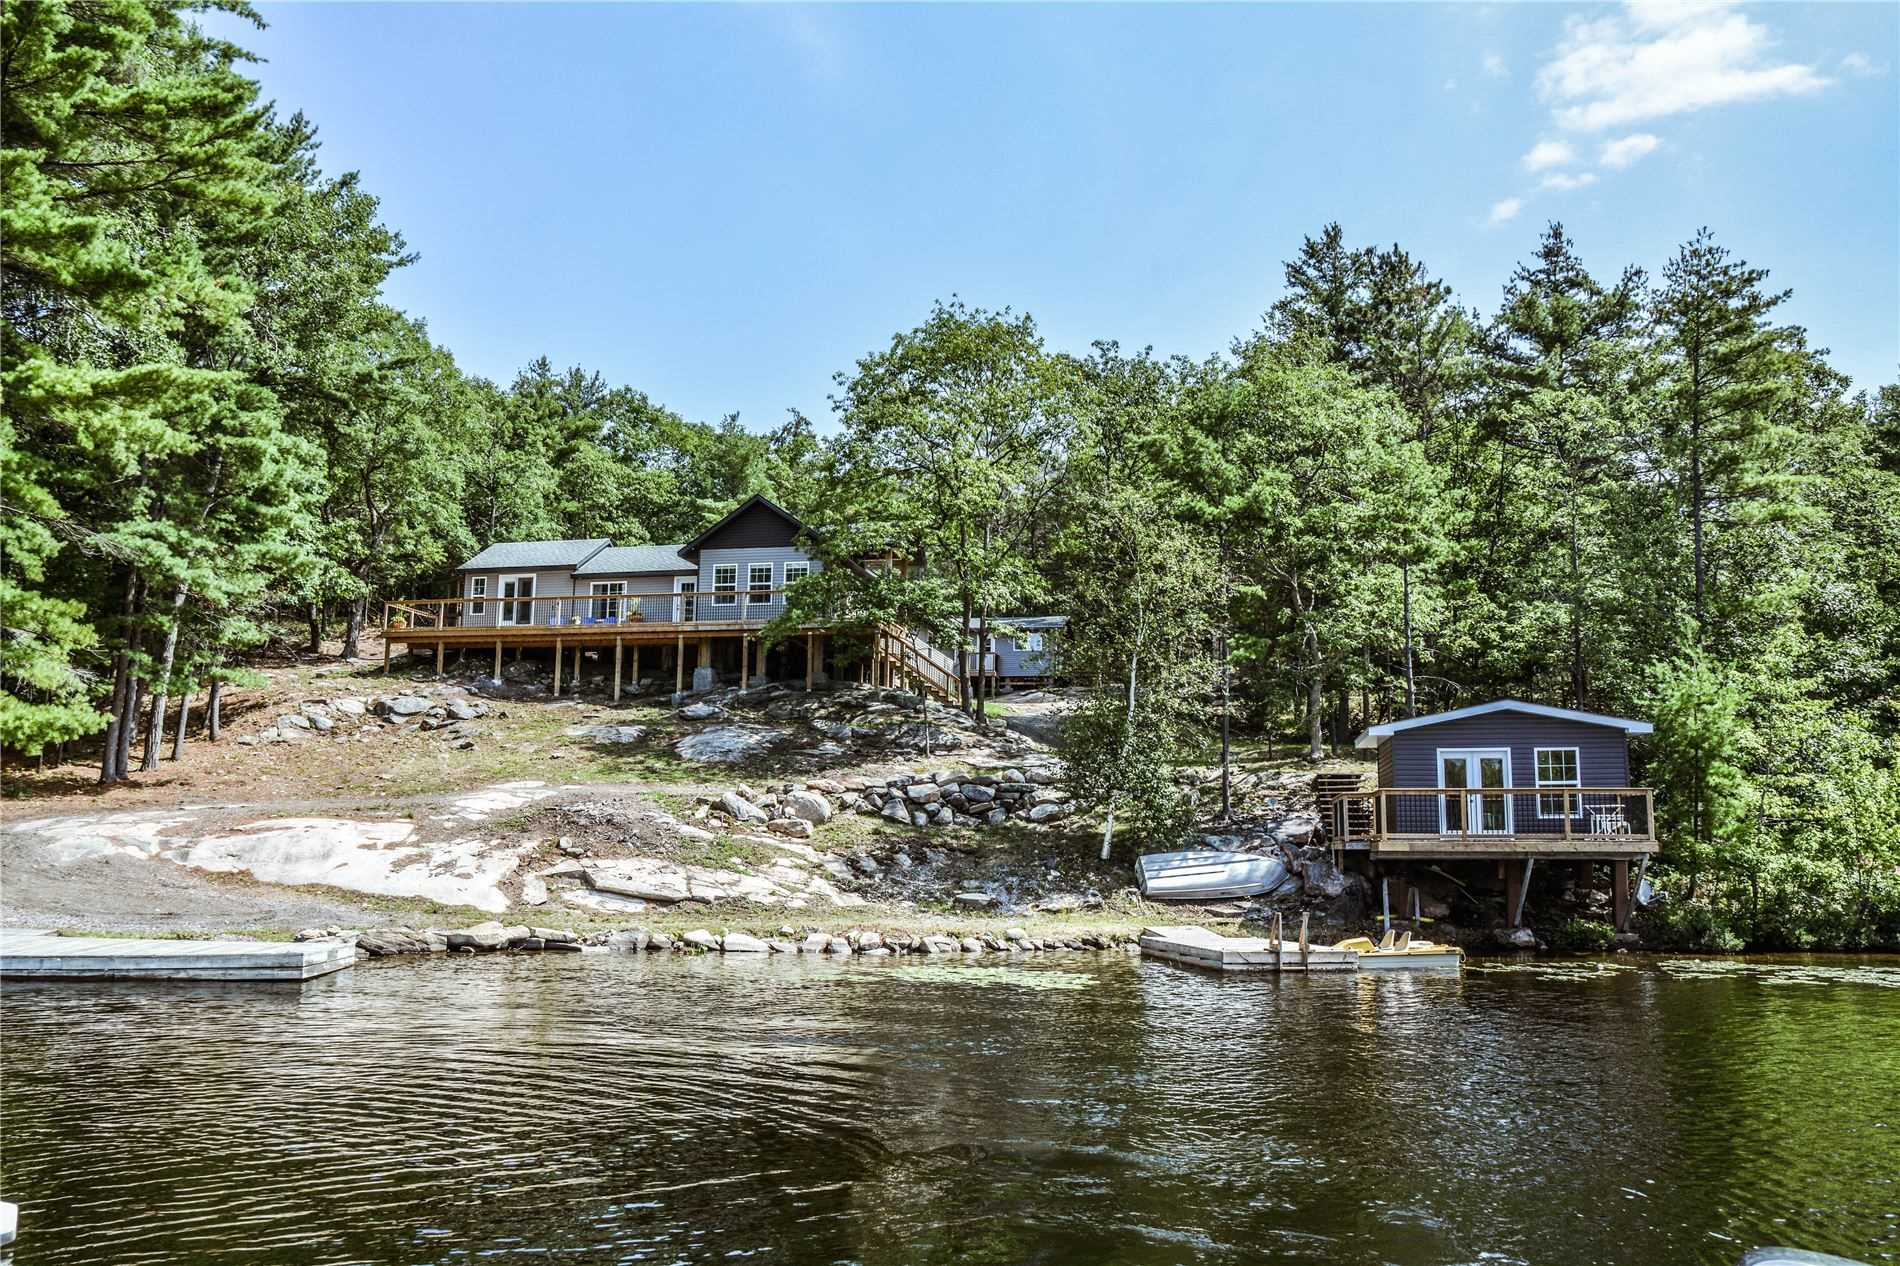 pictures of house for sale MLS: X4556429 located at 6900 Go Home Lake Shore, Georgian Bay P0C1H0